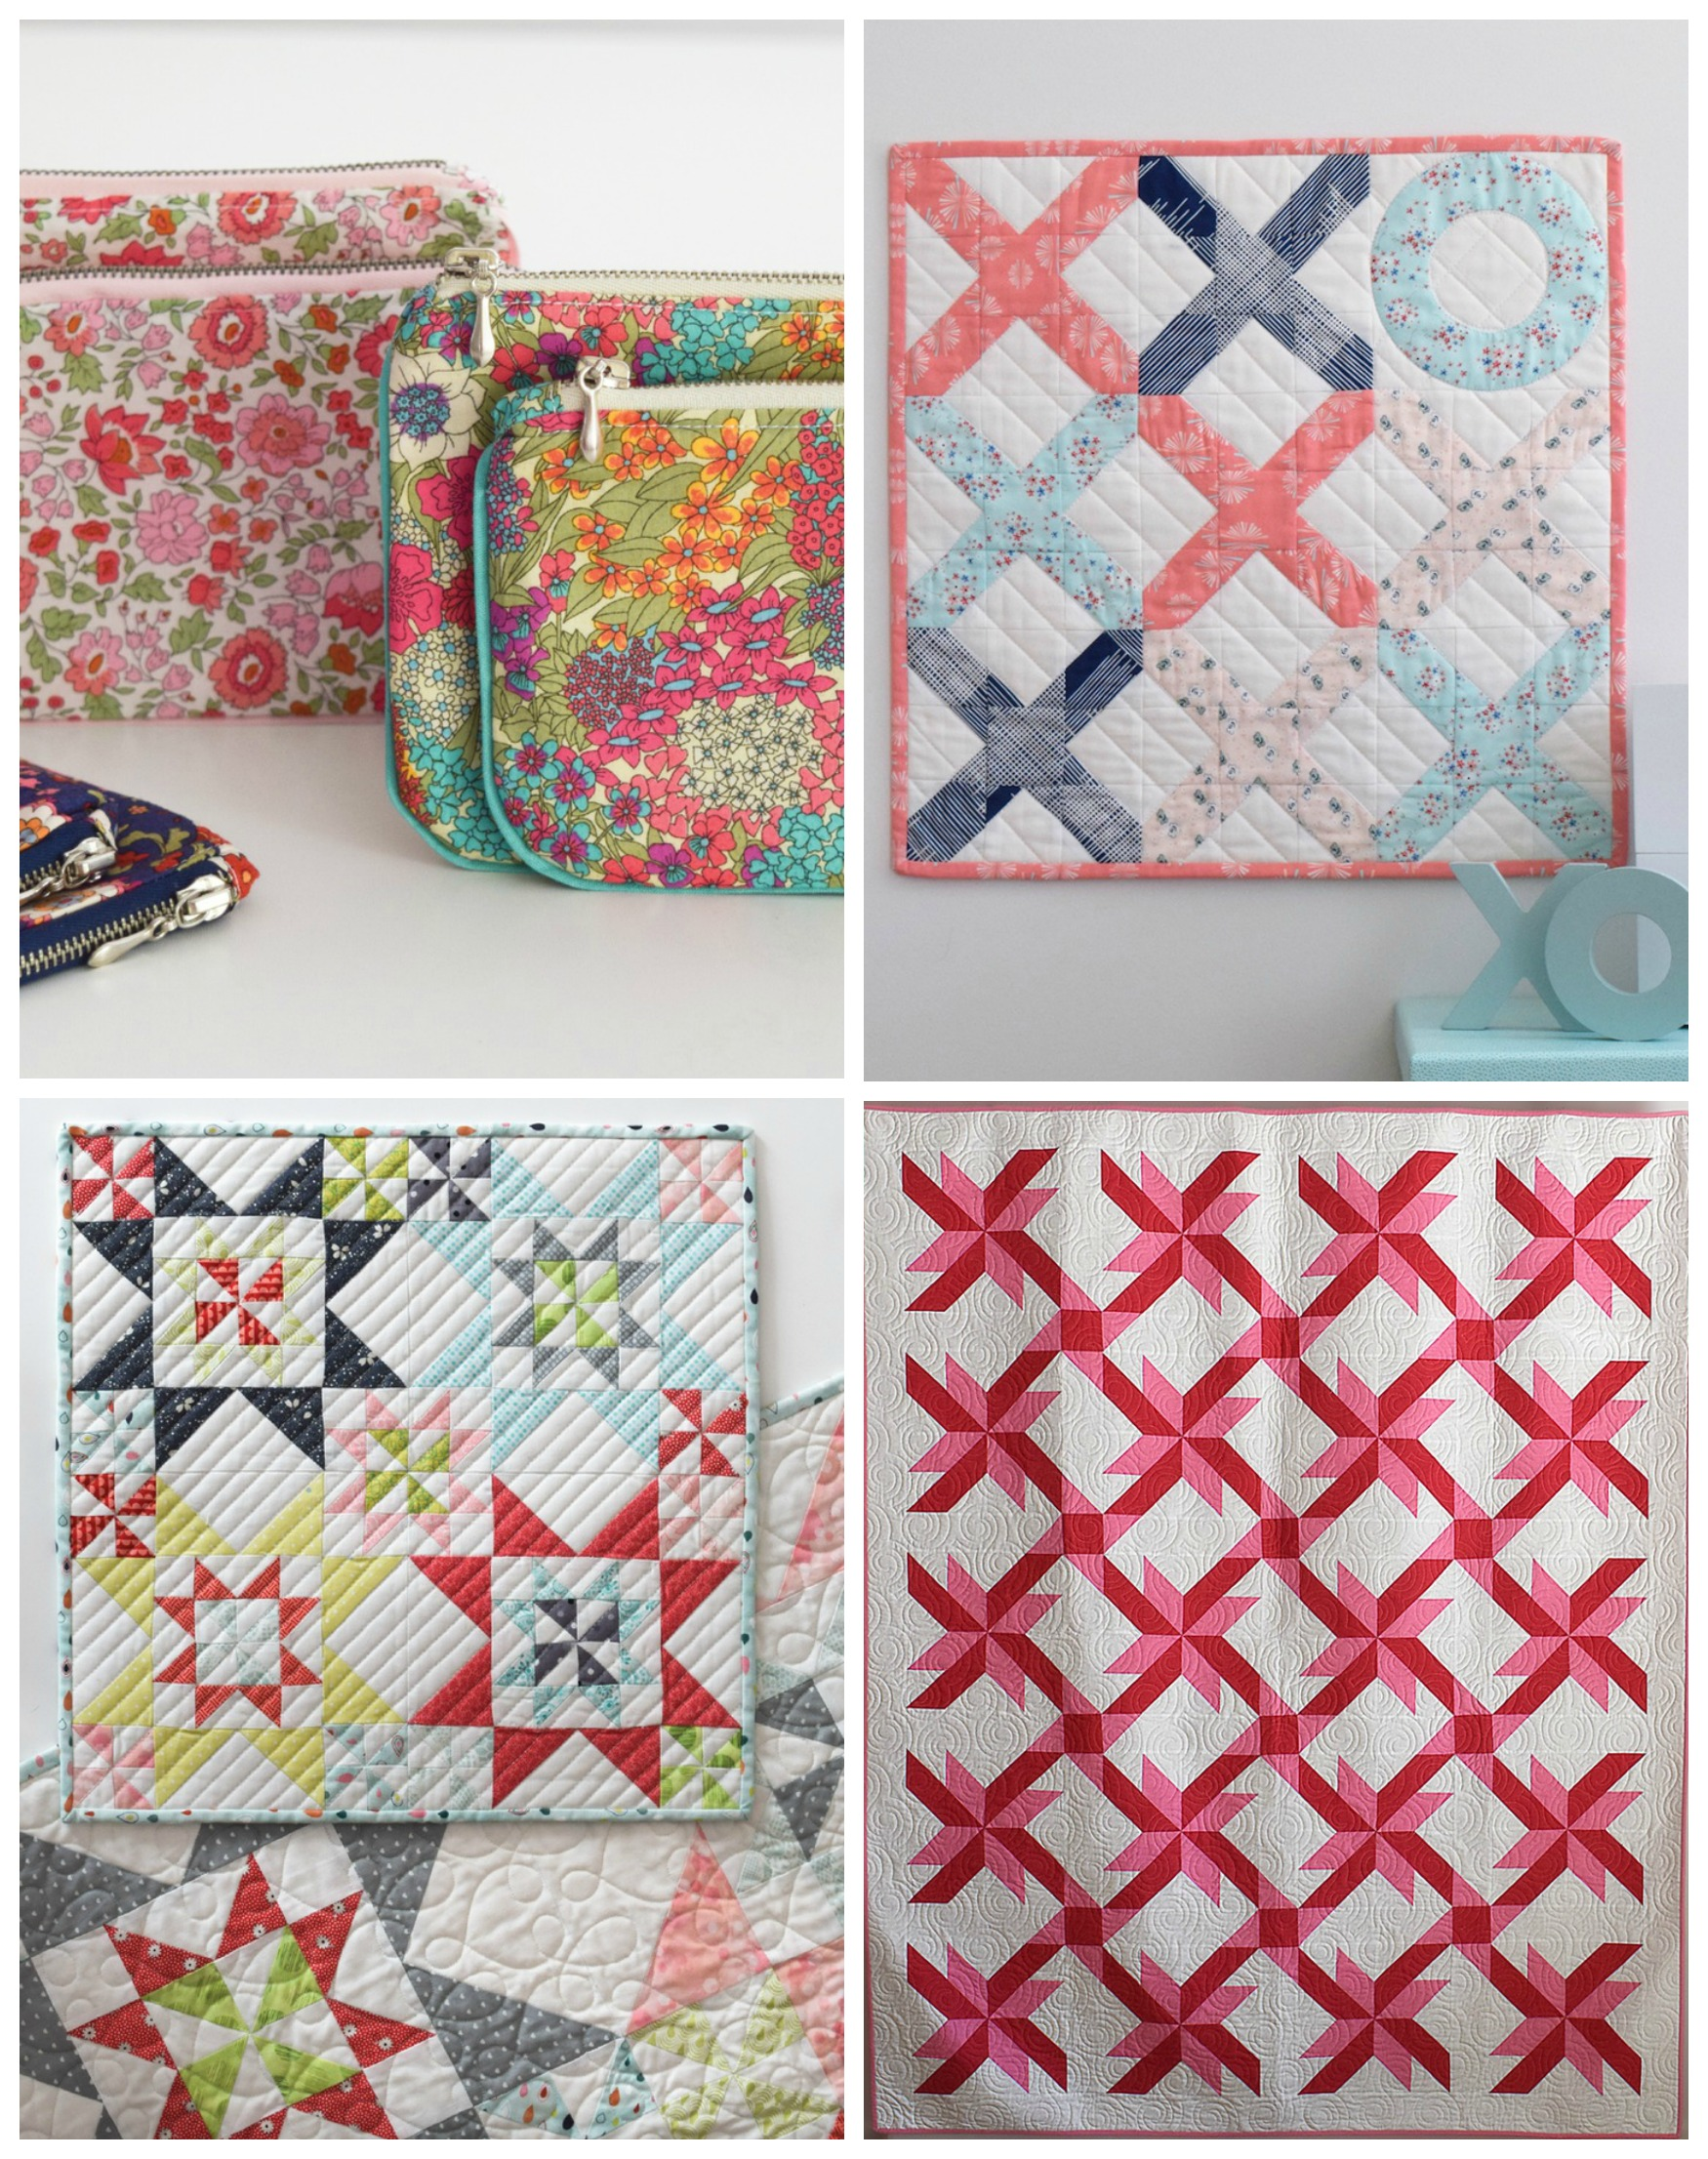 Patterns by Peta Peace from She Quilts A Lot